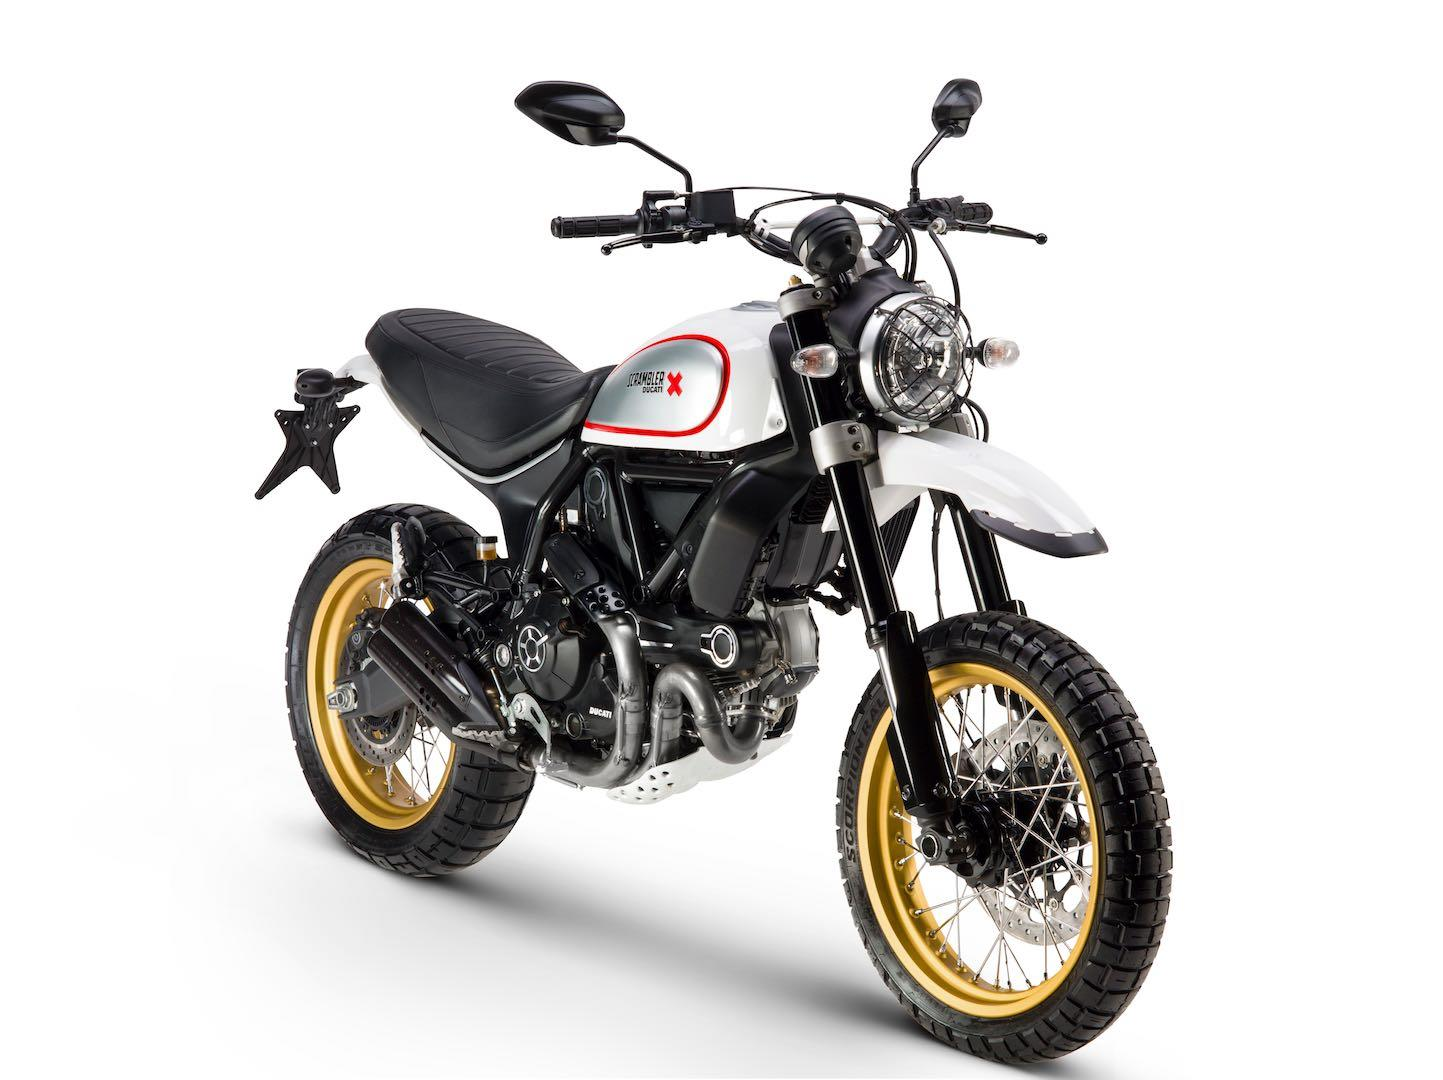 2017 Ducati Scrambler Desert Sled launched at Rs 9.32 lakh